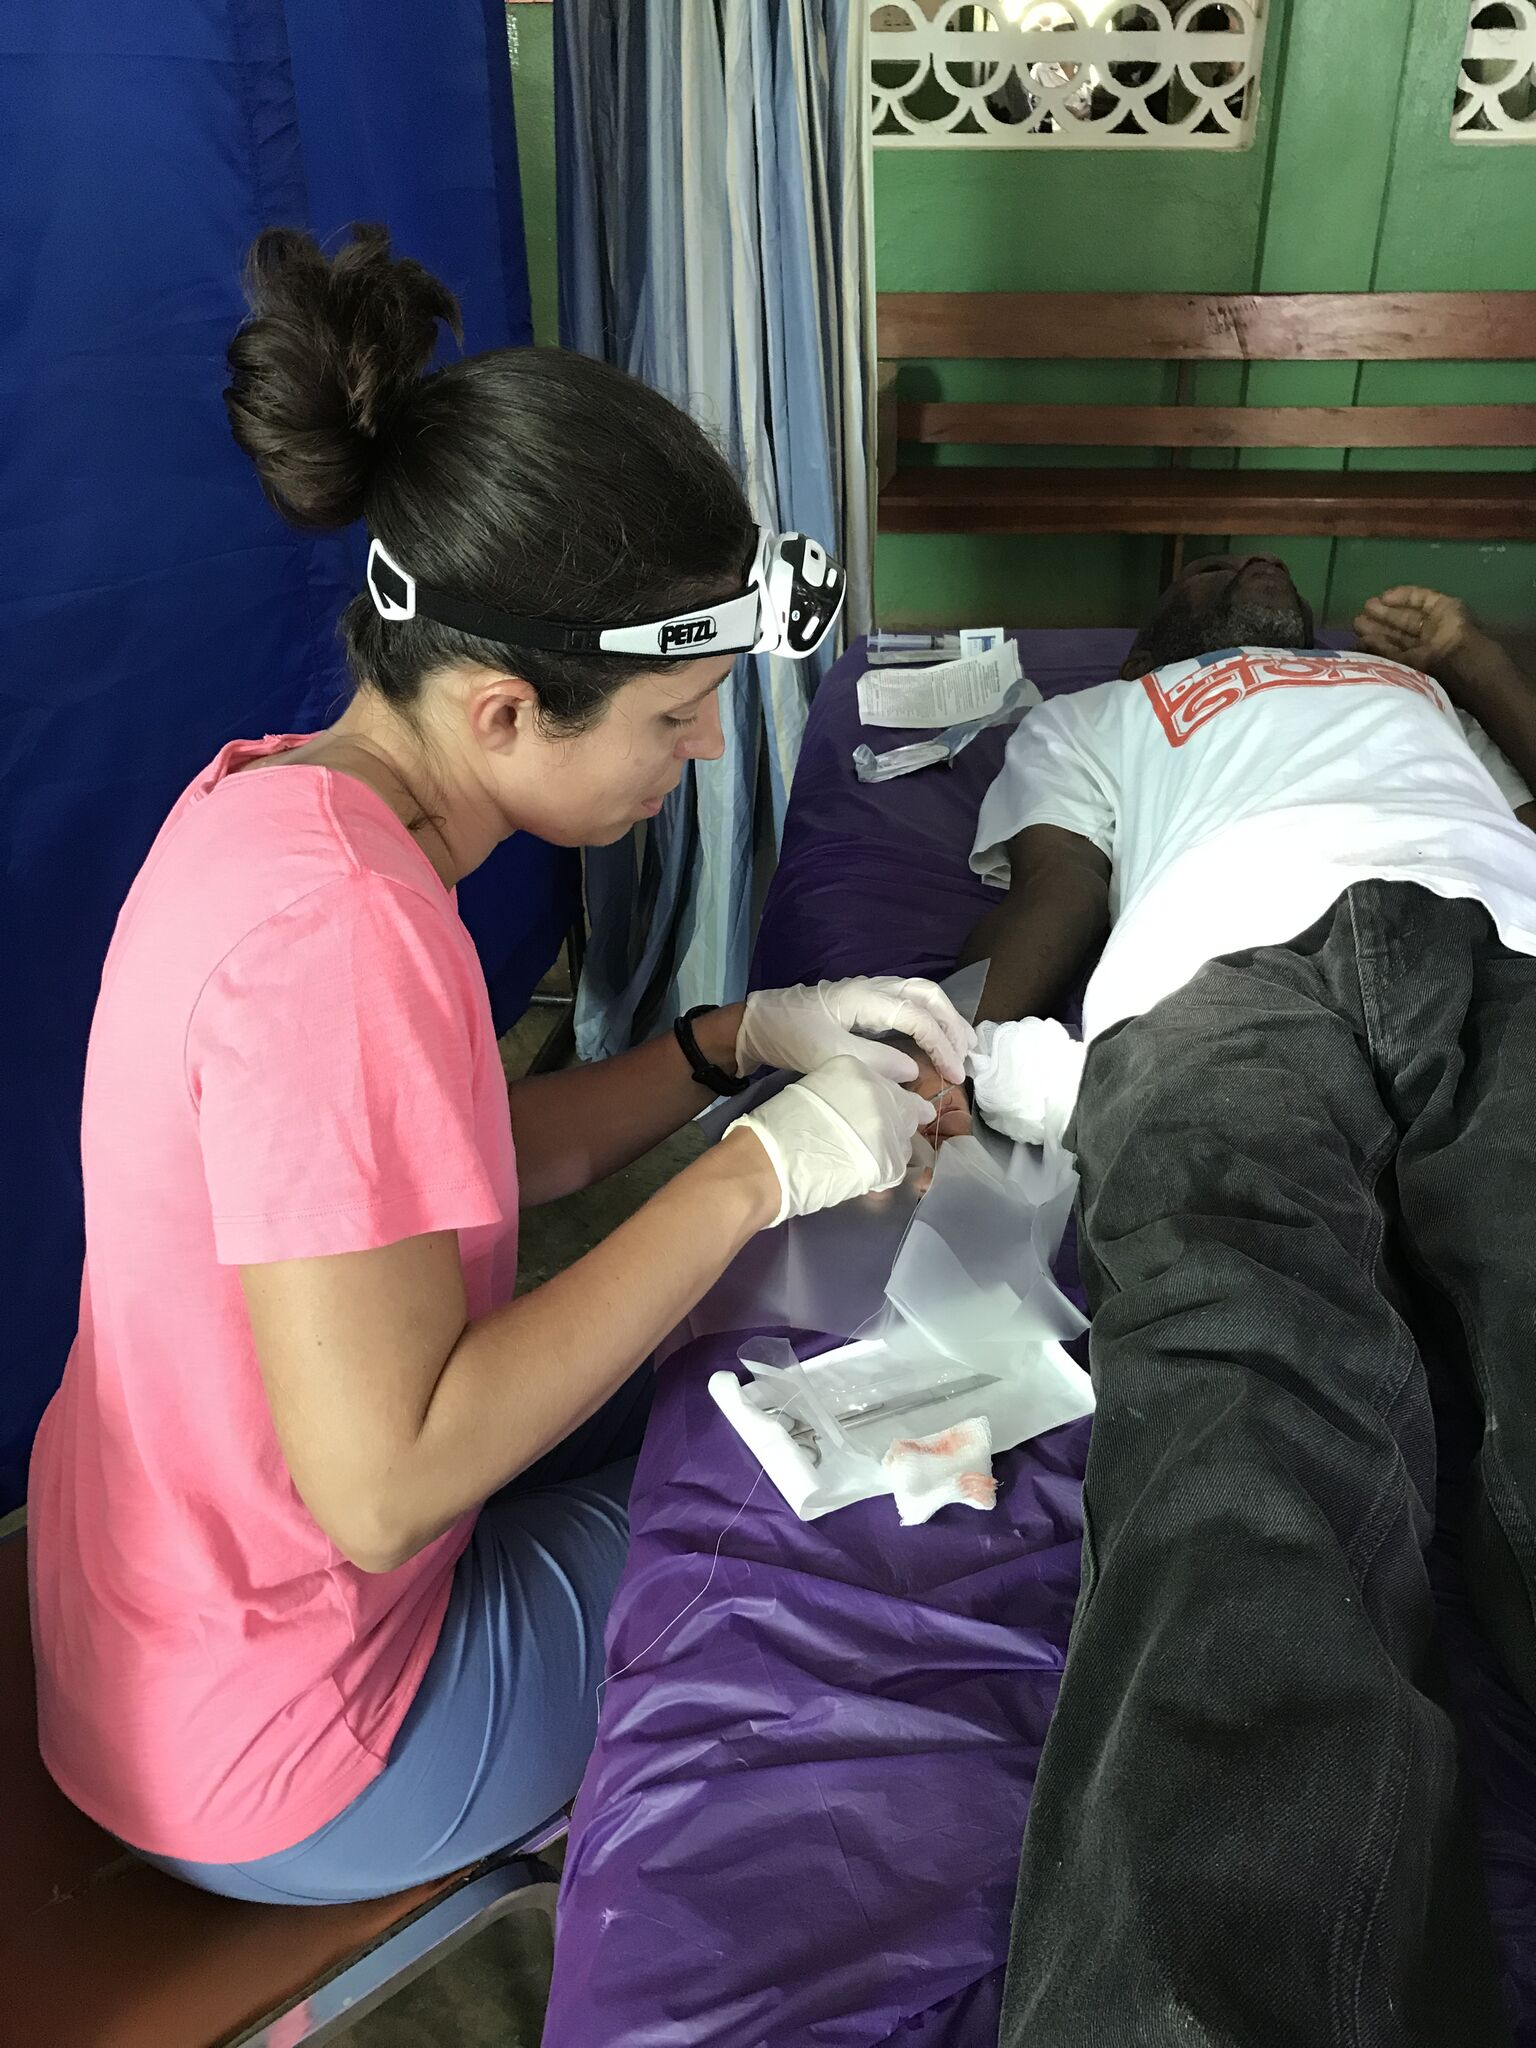 Rachel, a fellow D.O. and Family Practice/ER physician sews up a machete wound.